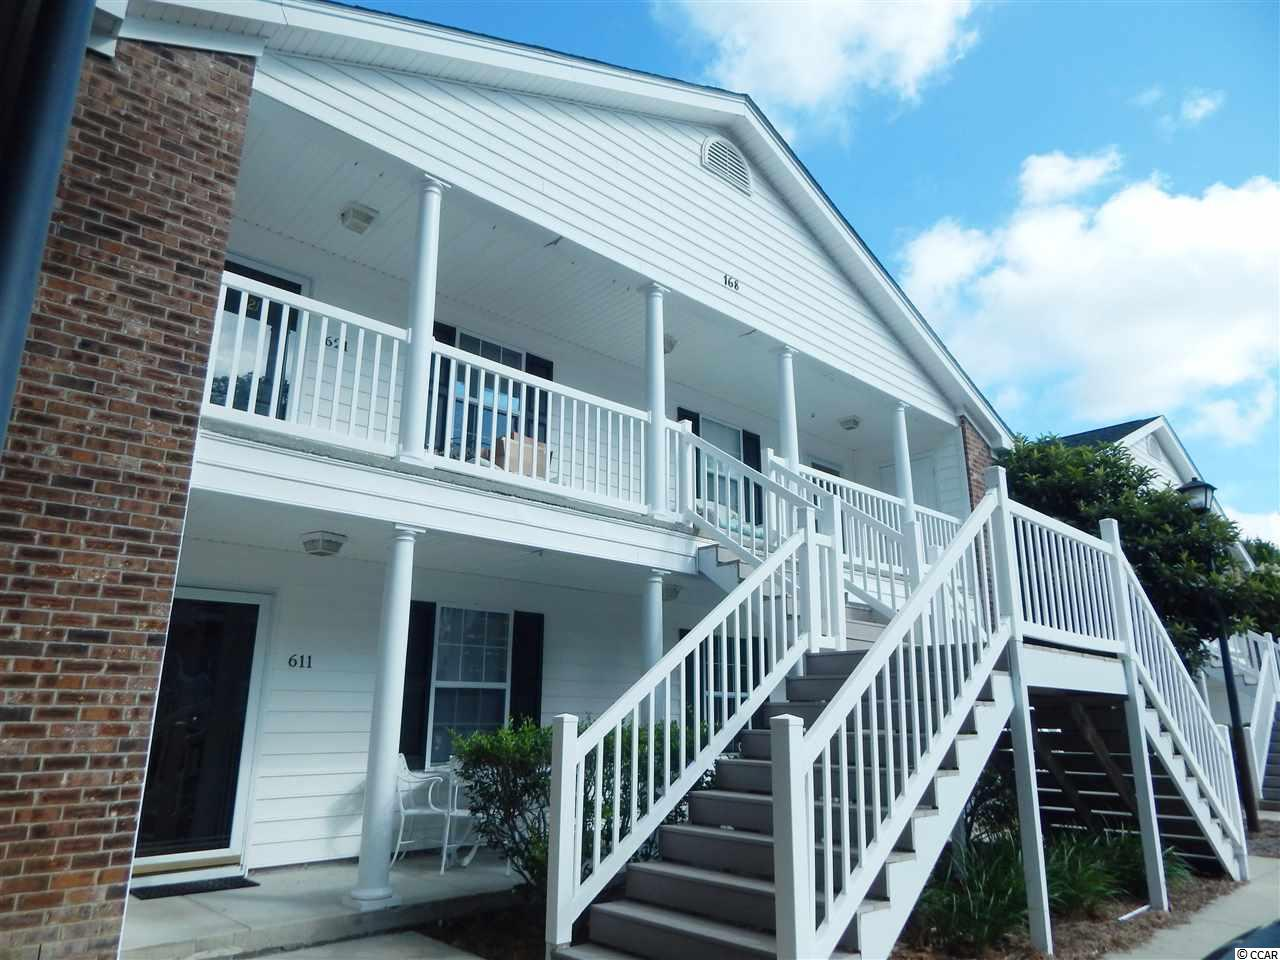 Well kept condo in the heart of Pawleys Island. Some features include: new granite countertops in the kitchen, new paint throughout, new energy saving HVAC system with air scrubber technology, new dishwasher and garbage disposal and a Carolina room with a view of the community pool. Close to everything the area has to offer and only a few minutes to Pawleys Island Beach! All measurements and square footage are approximate. All listing information is deemed reliable. Buyer is responsible to verify.